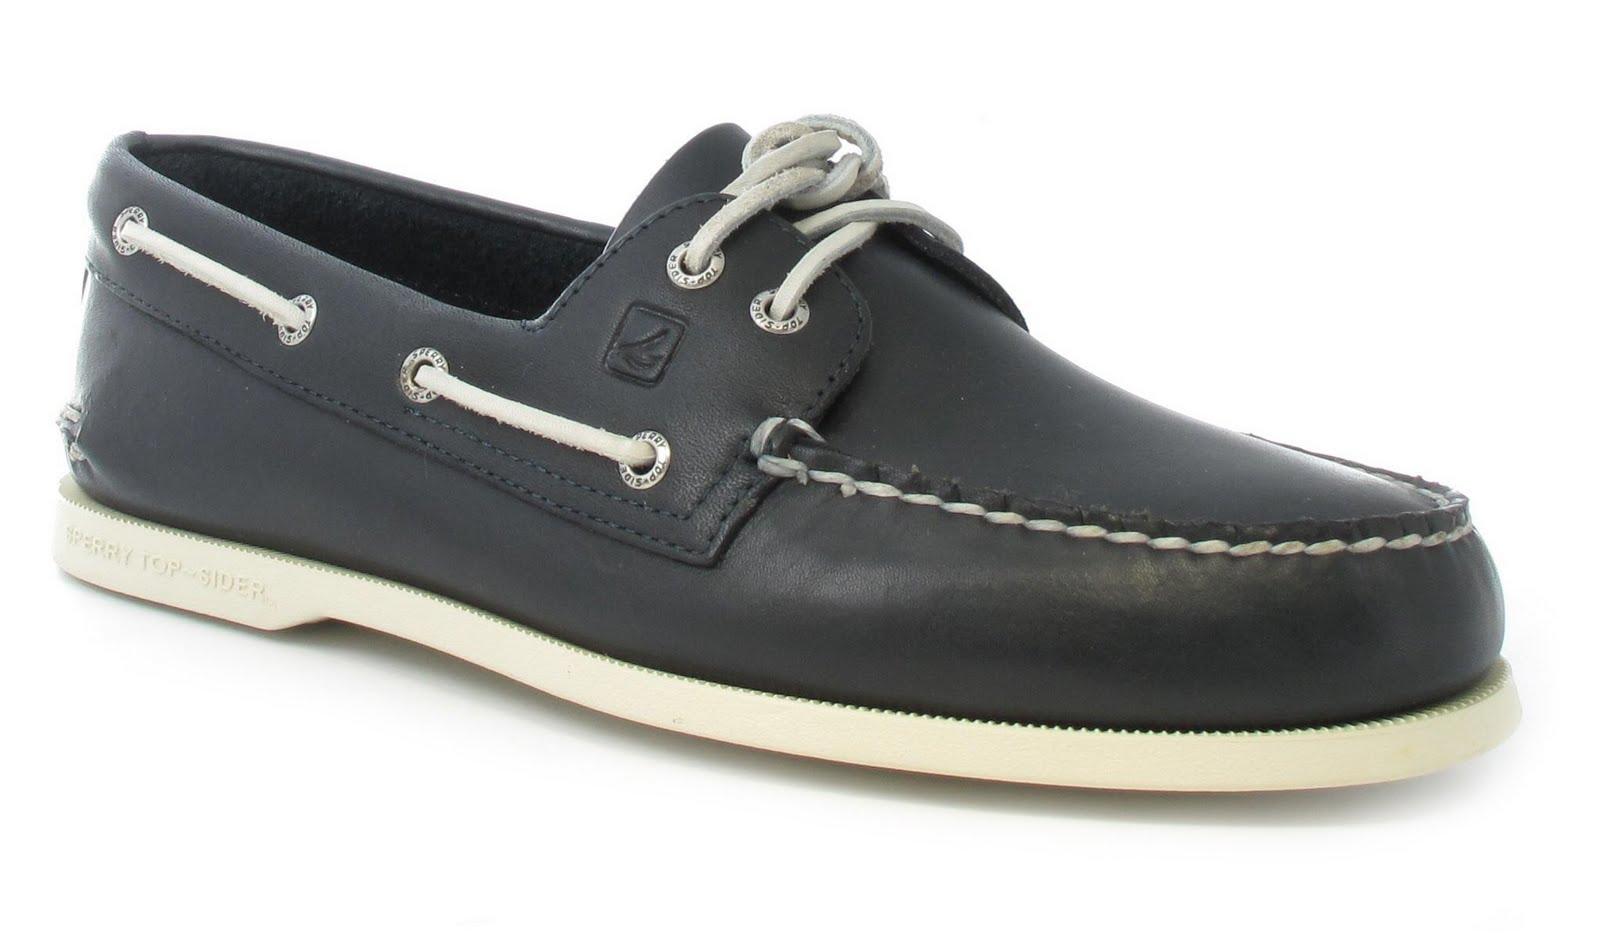 men's styling: Messing about on the water- then wear the ...